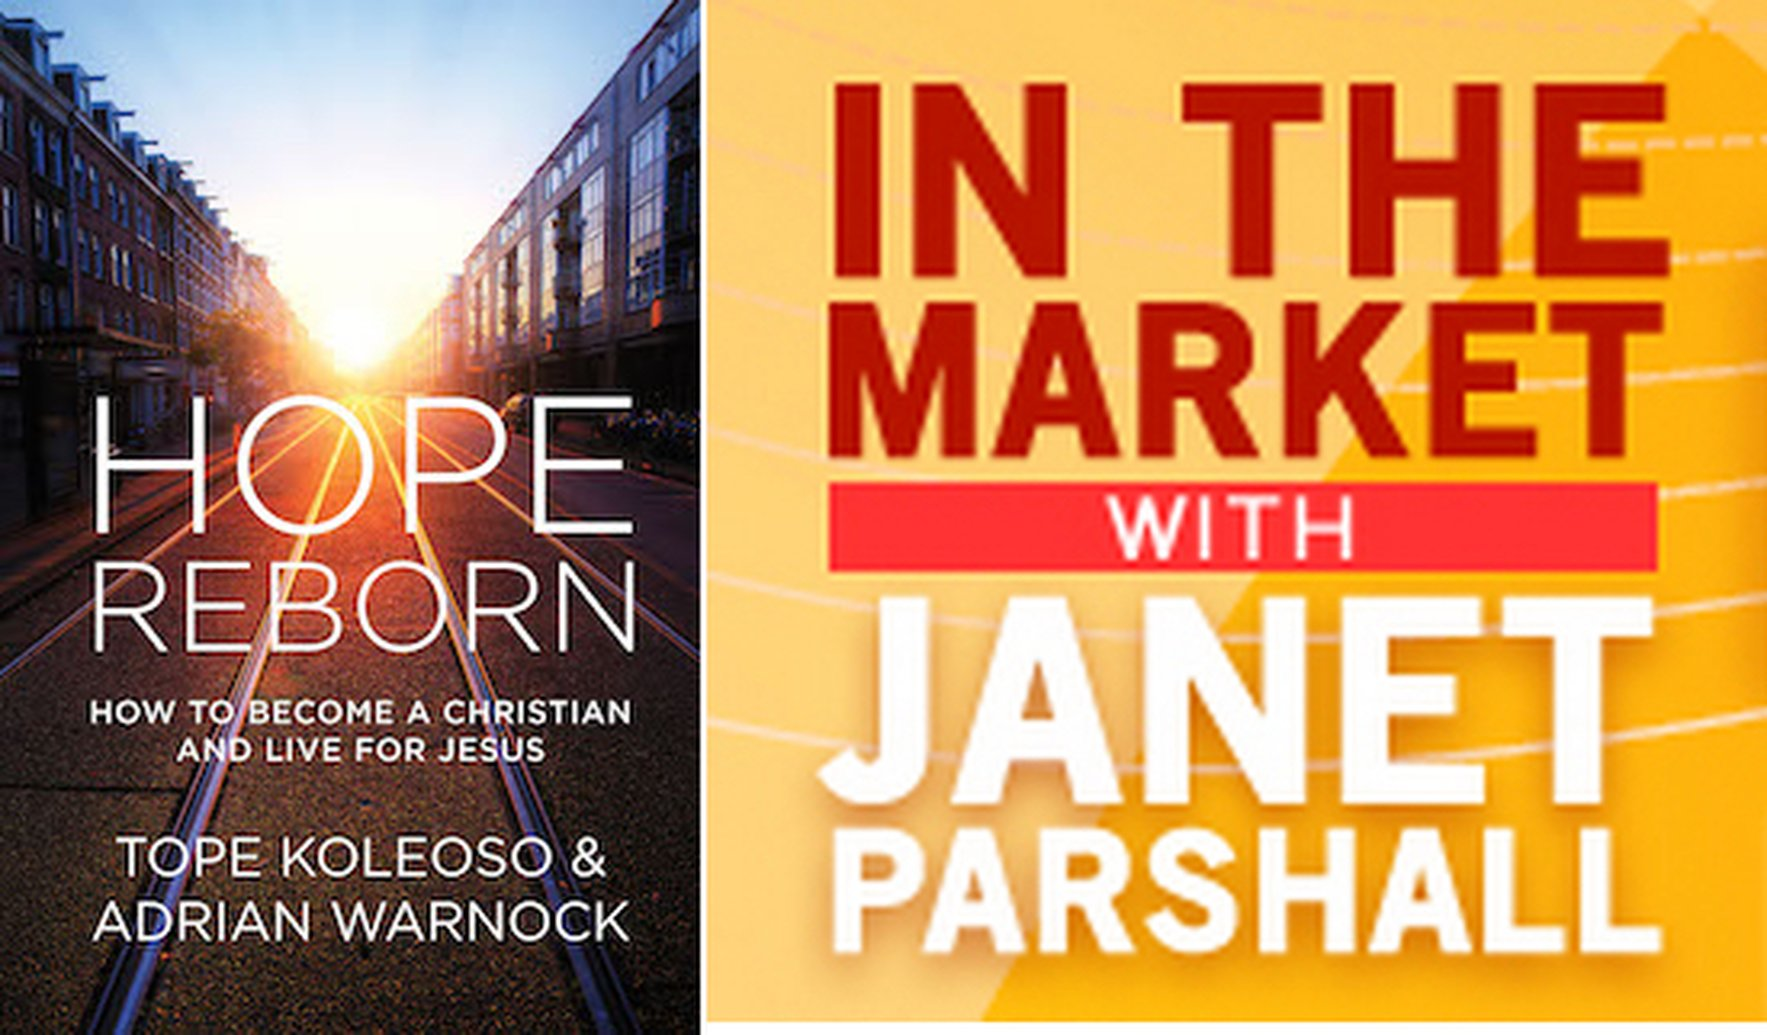 Adrian Warnock Discusses Hope Reborn on In the Market with Janet Parshall